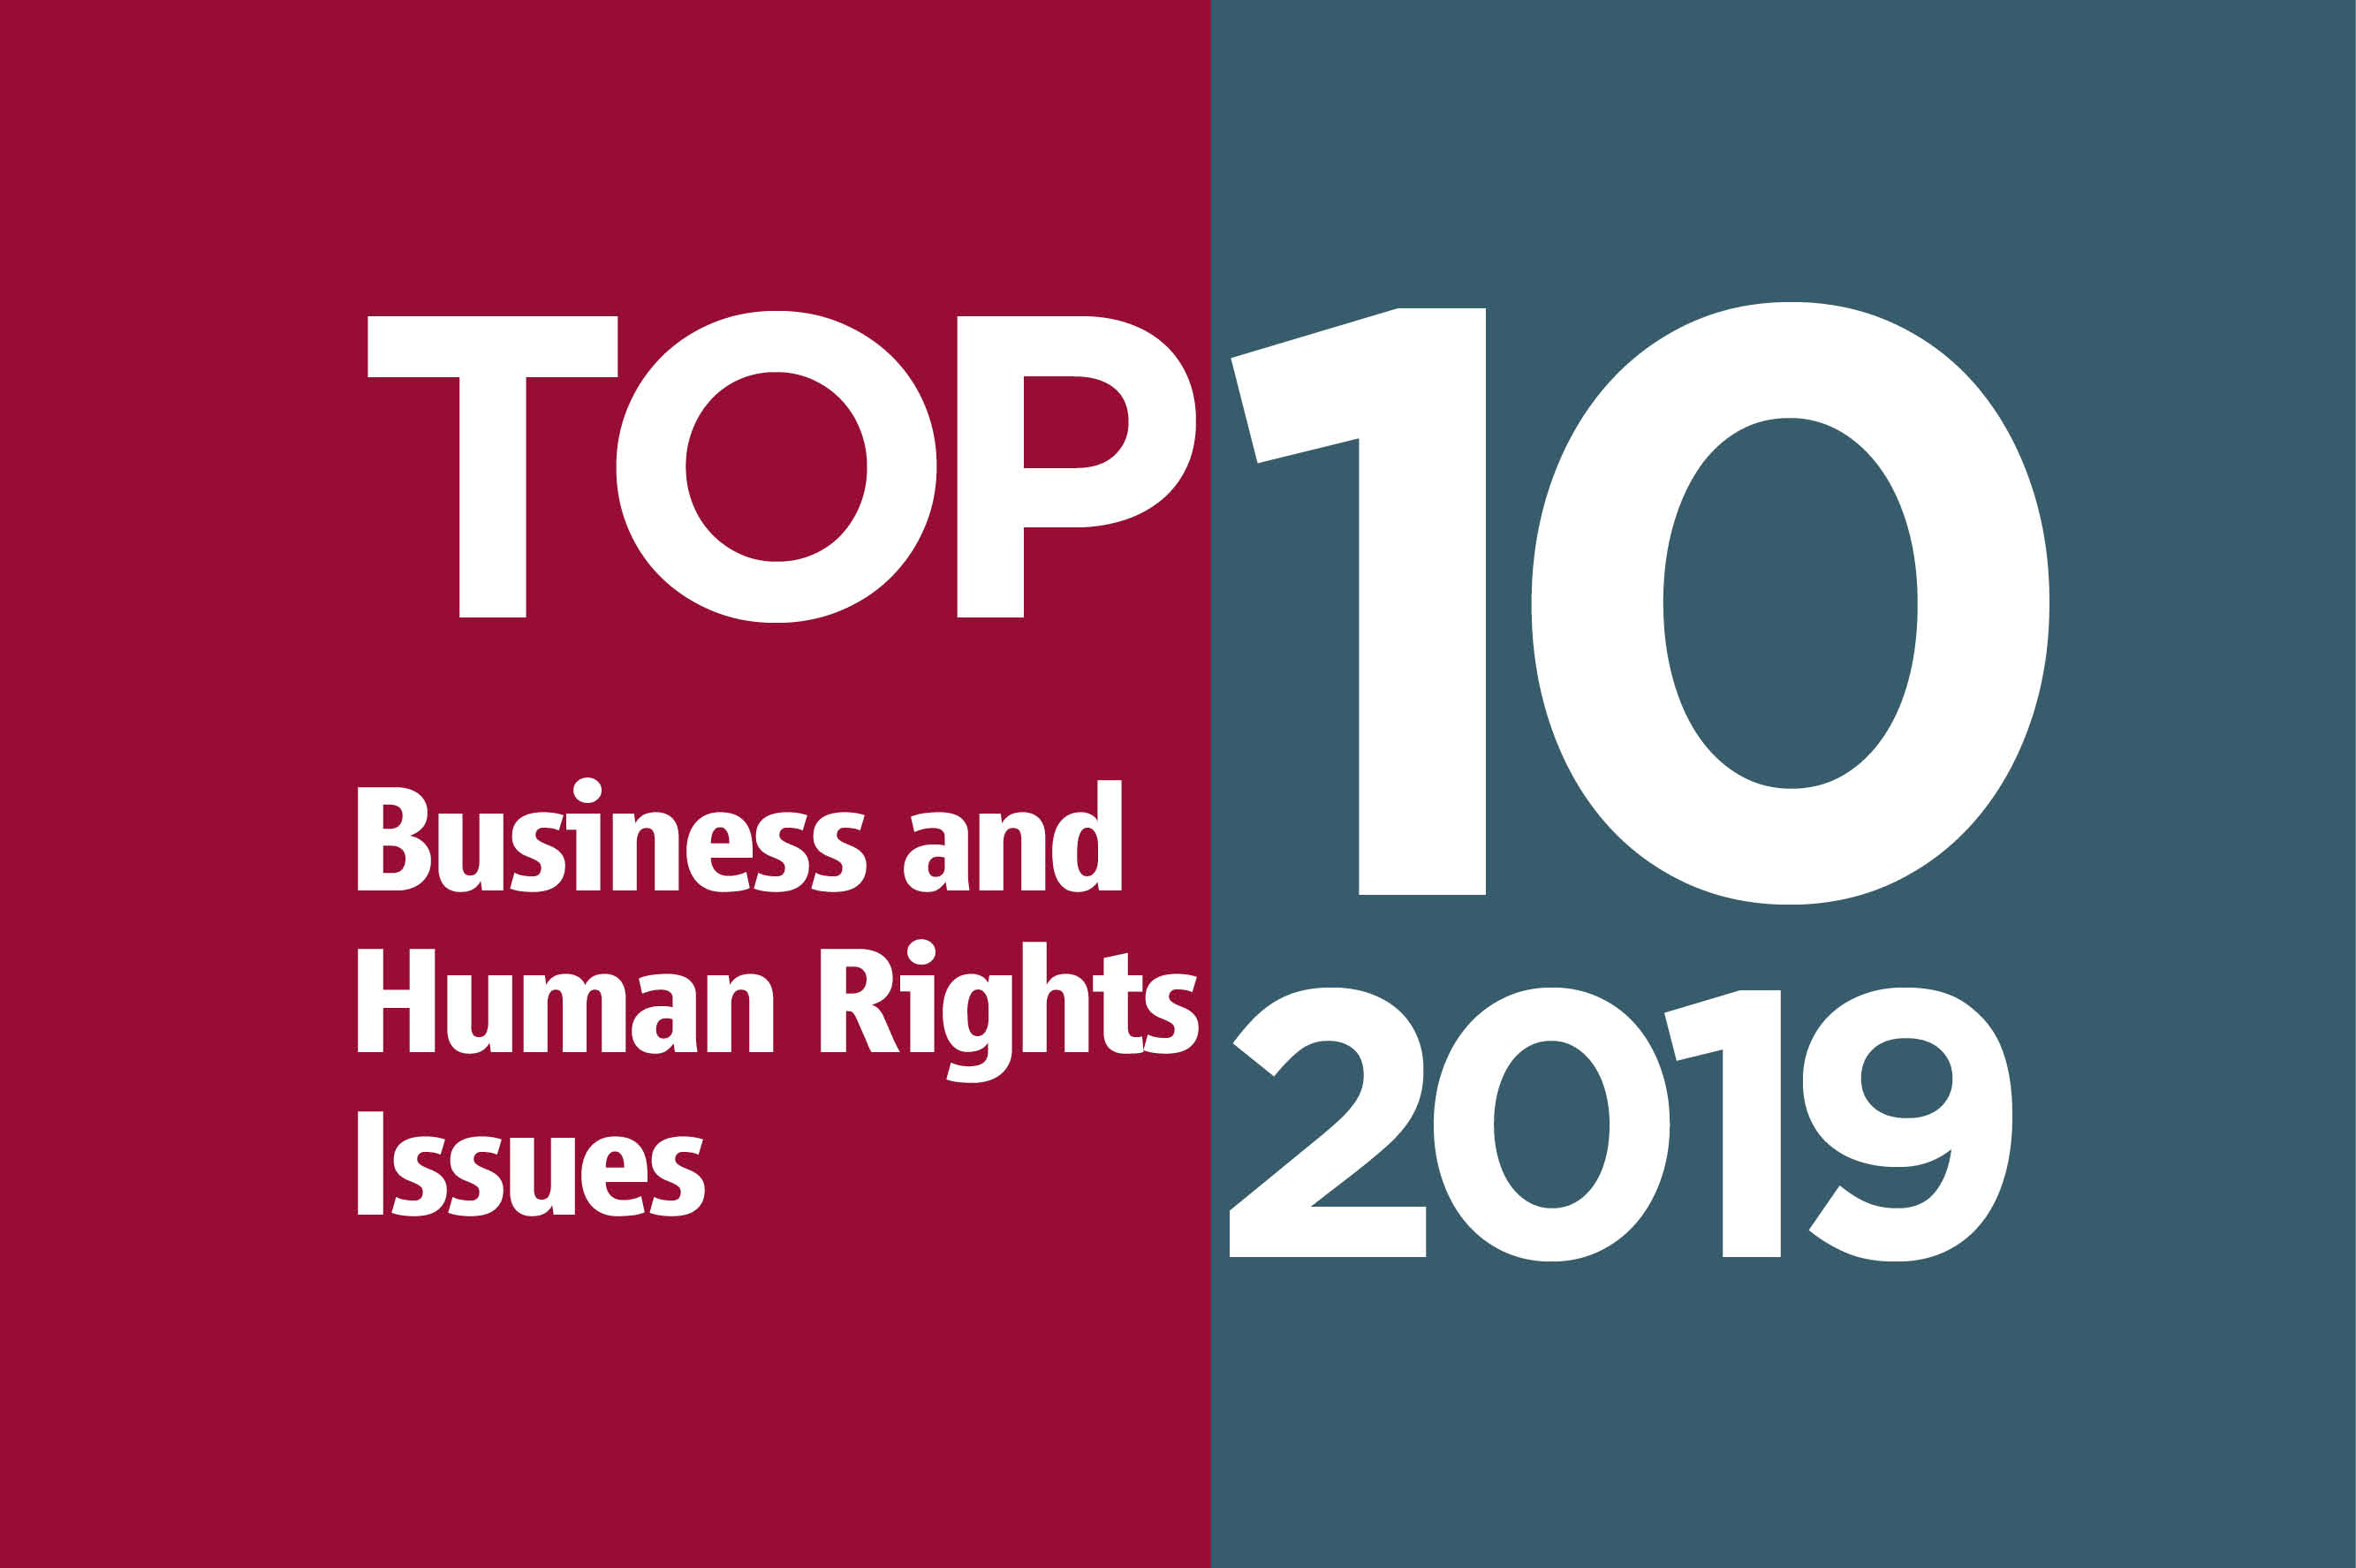 Top Ten Issues in 2019